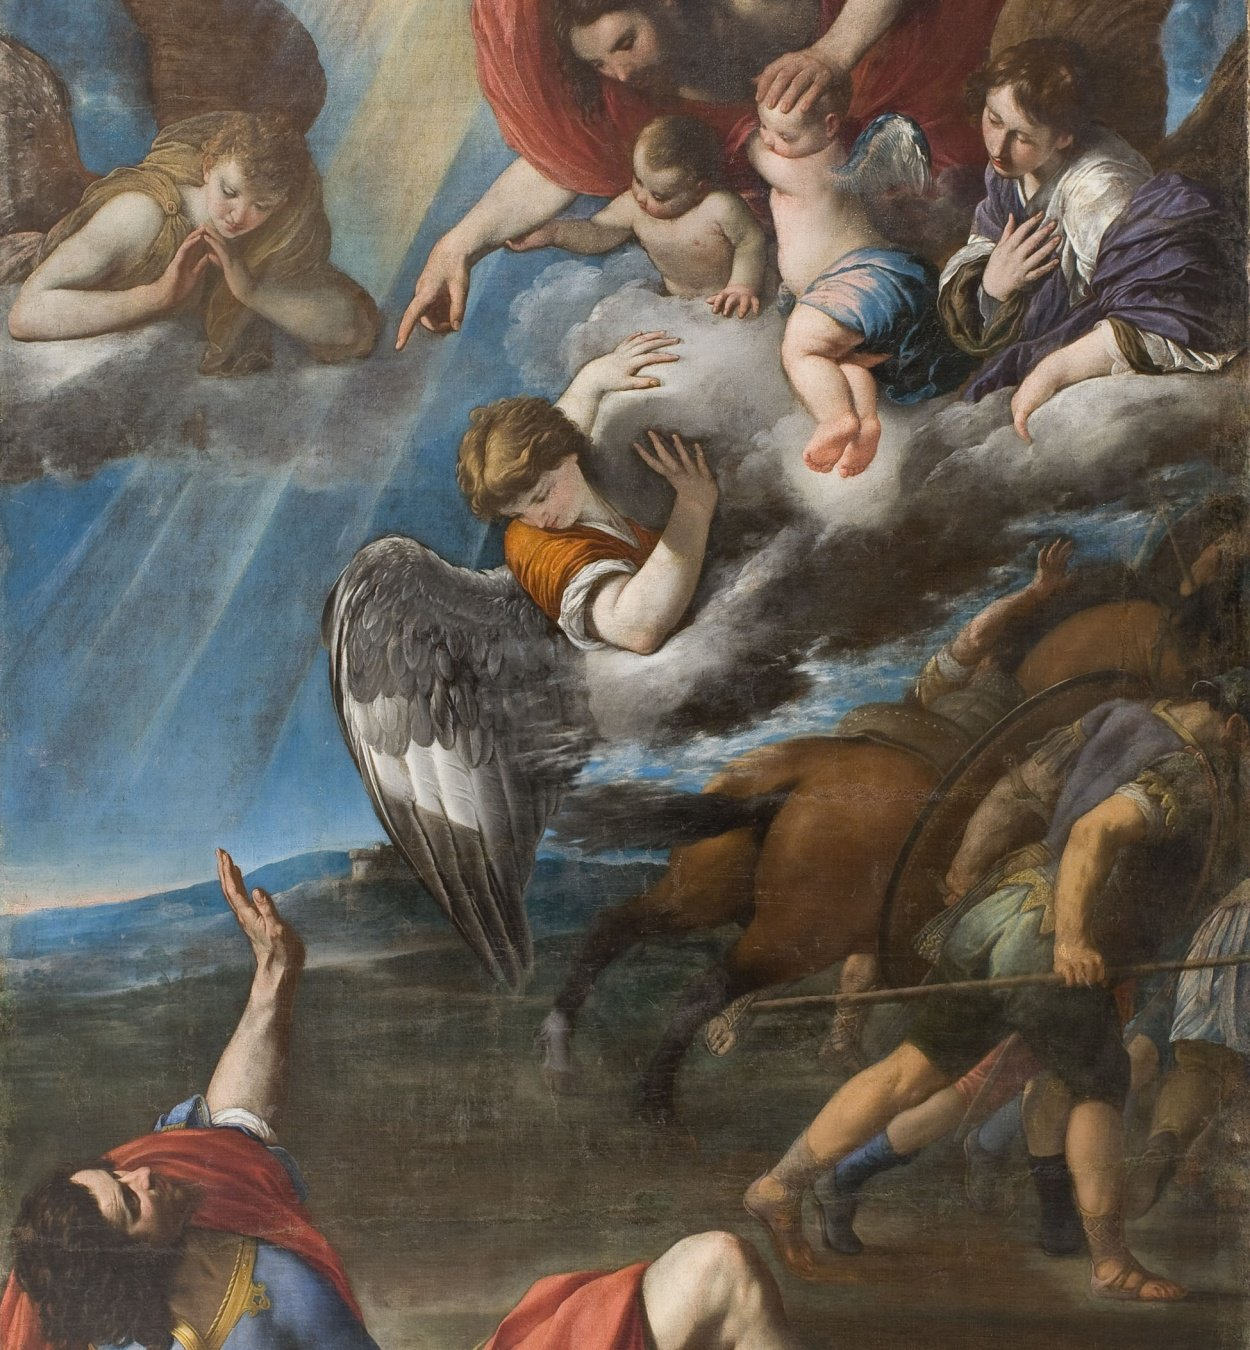 Juan Bautista Maíno - The Conversion of Saint Paul - Circa 1614